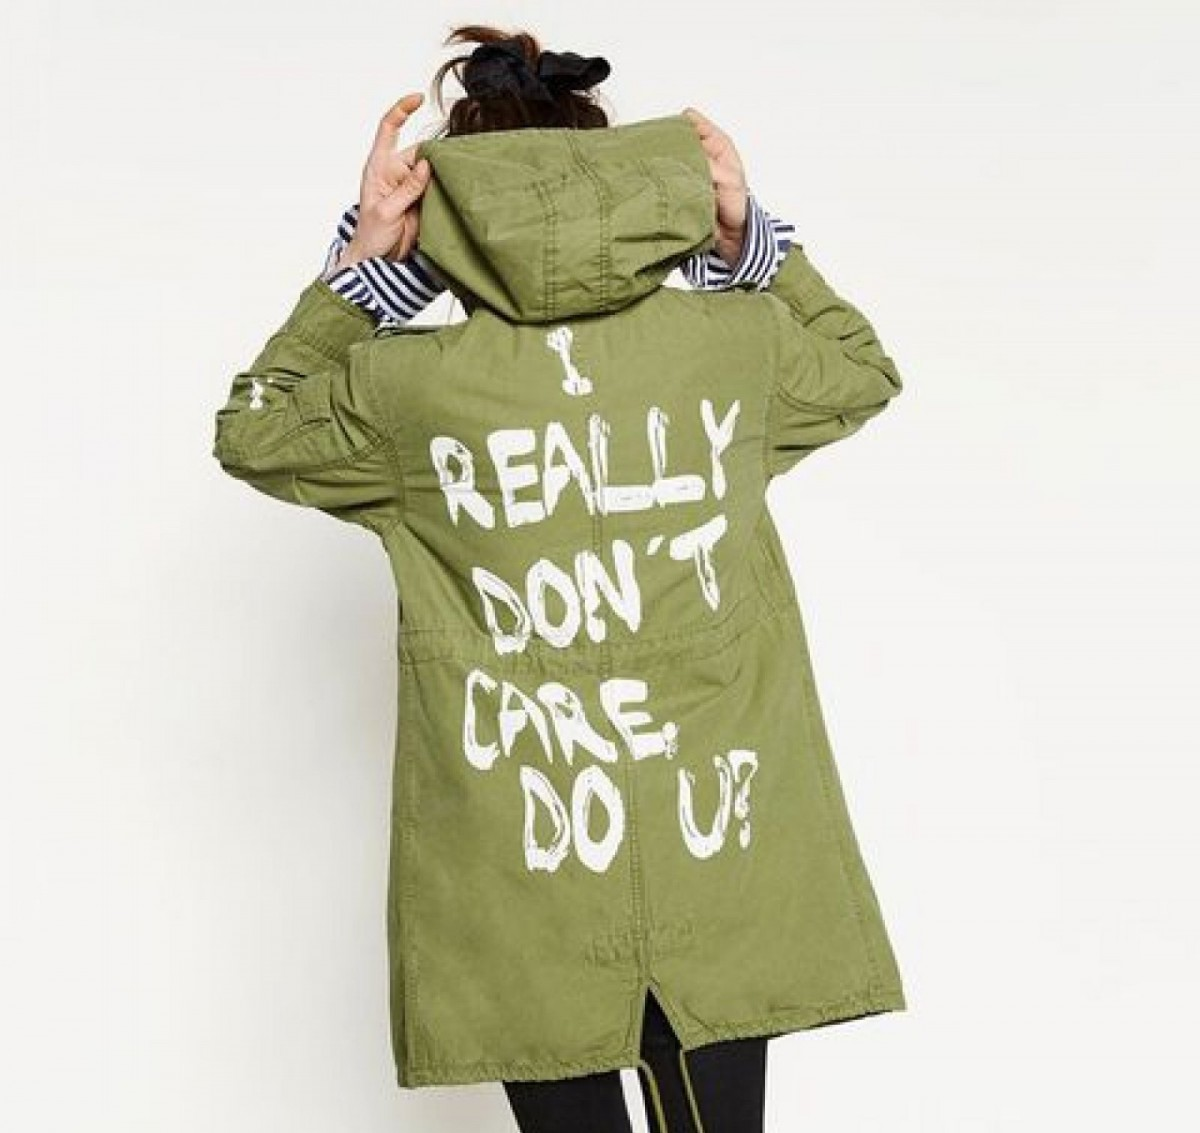 Imagen de la parka de Zara con la frase «I really don't care, do U?».